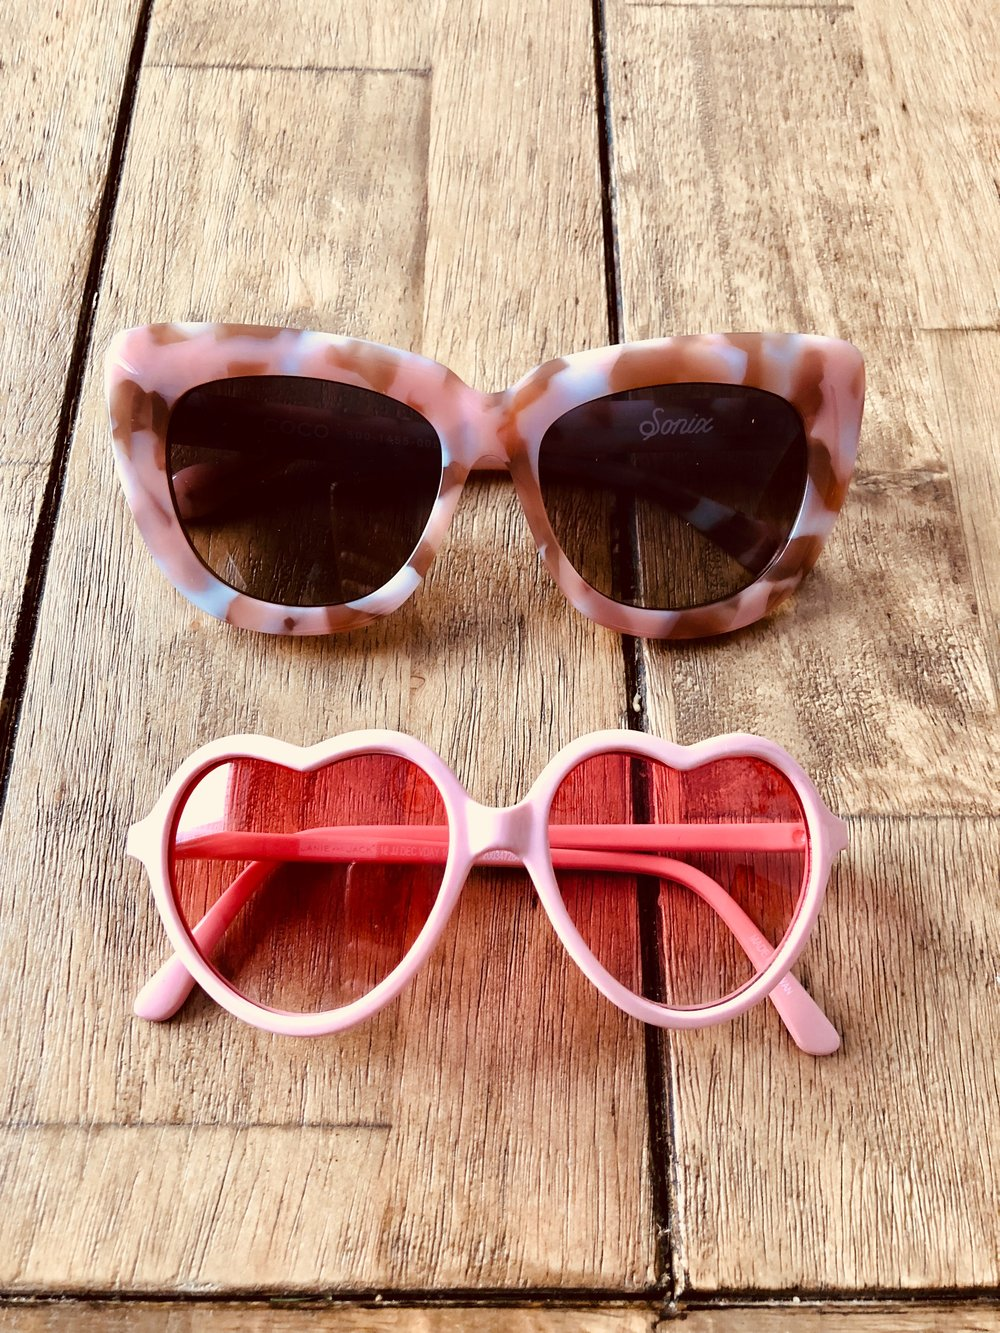 Heart shaped sunglasses  are Nina's, for the record. Top pink ones are no longer available at Anthropologie, but may be somewhere else. They are Sonix.